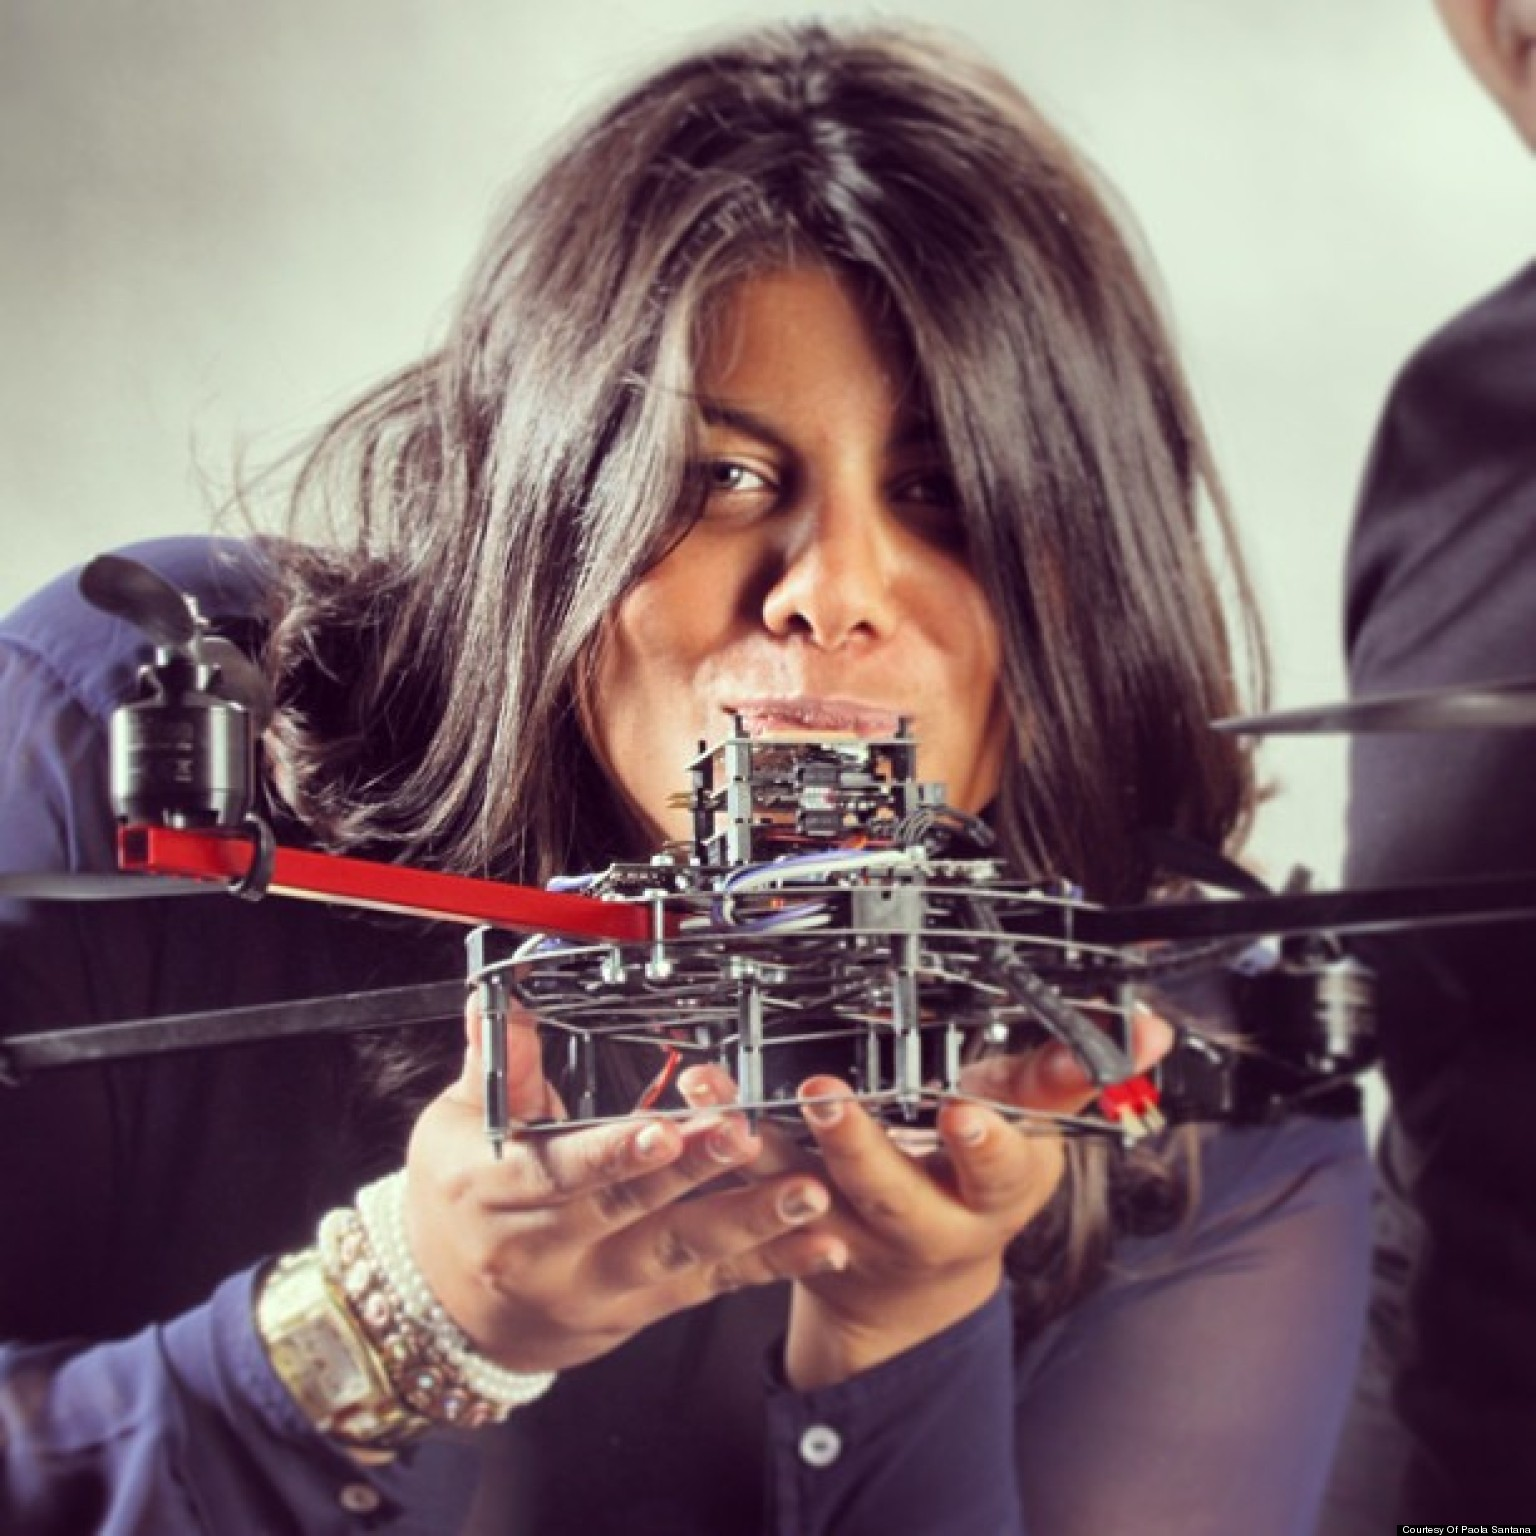 matternet founder paola santana wants to replace the